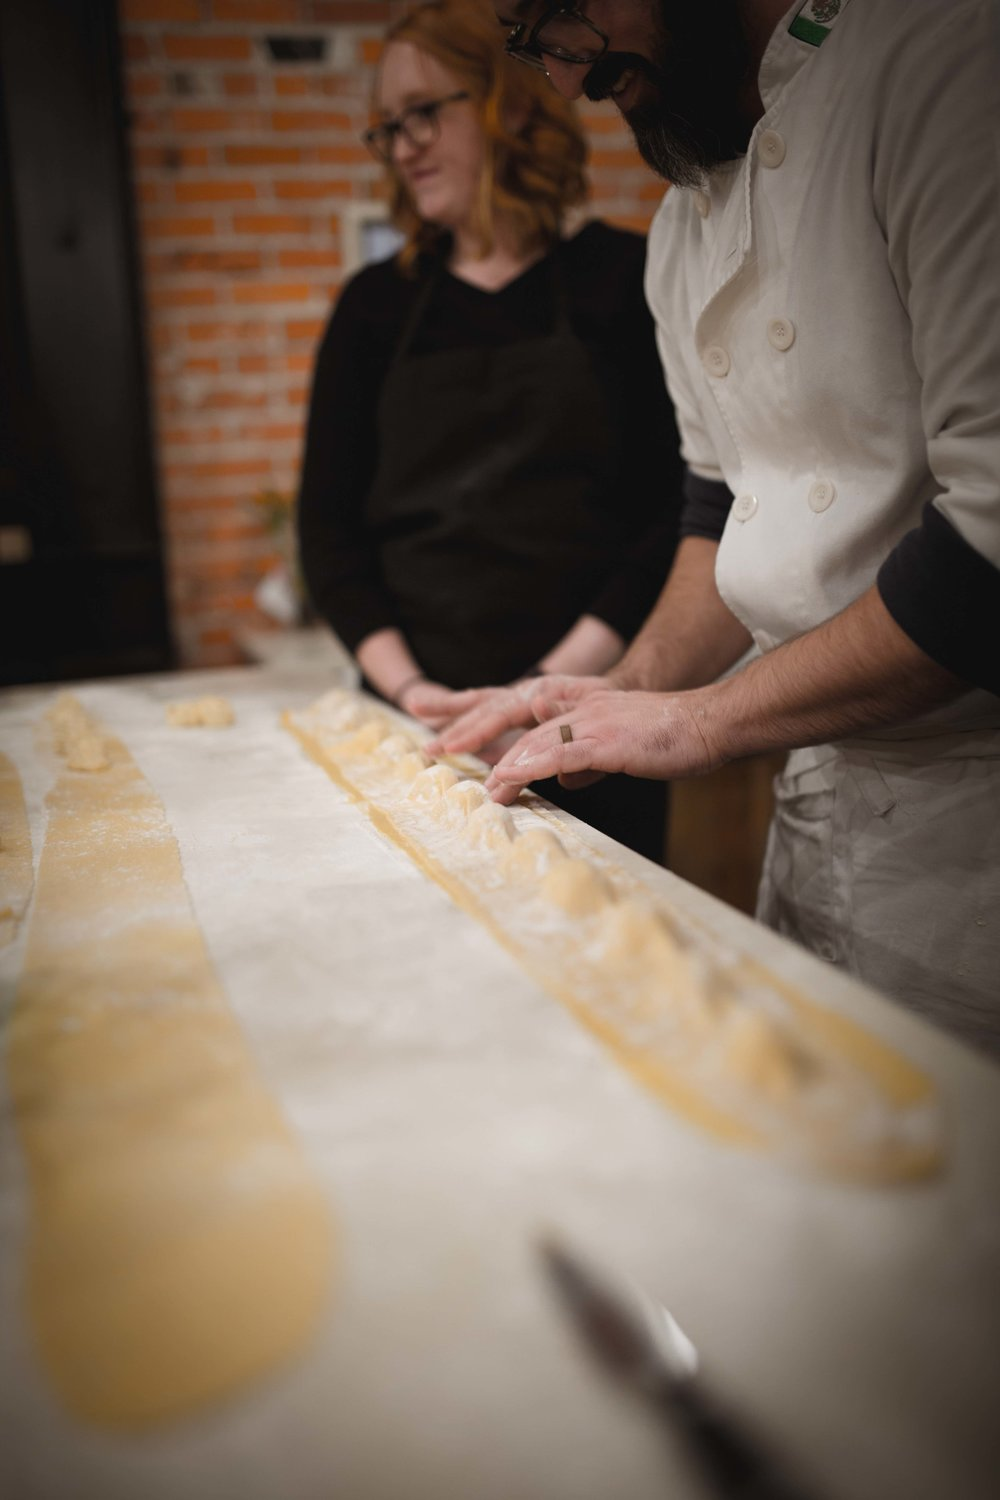 GingerandBaker-JuliyJuan-CookingClass-Feb28-80.jpg